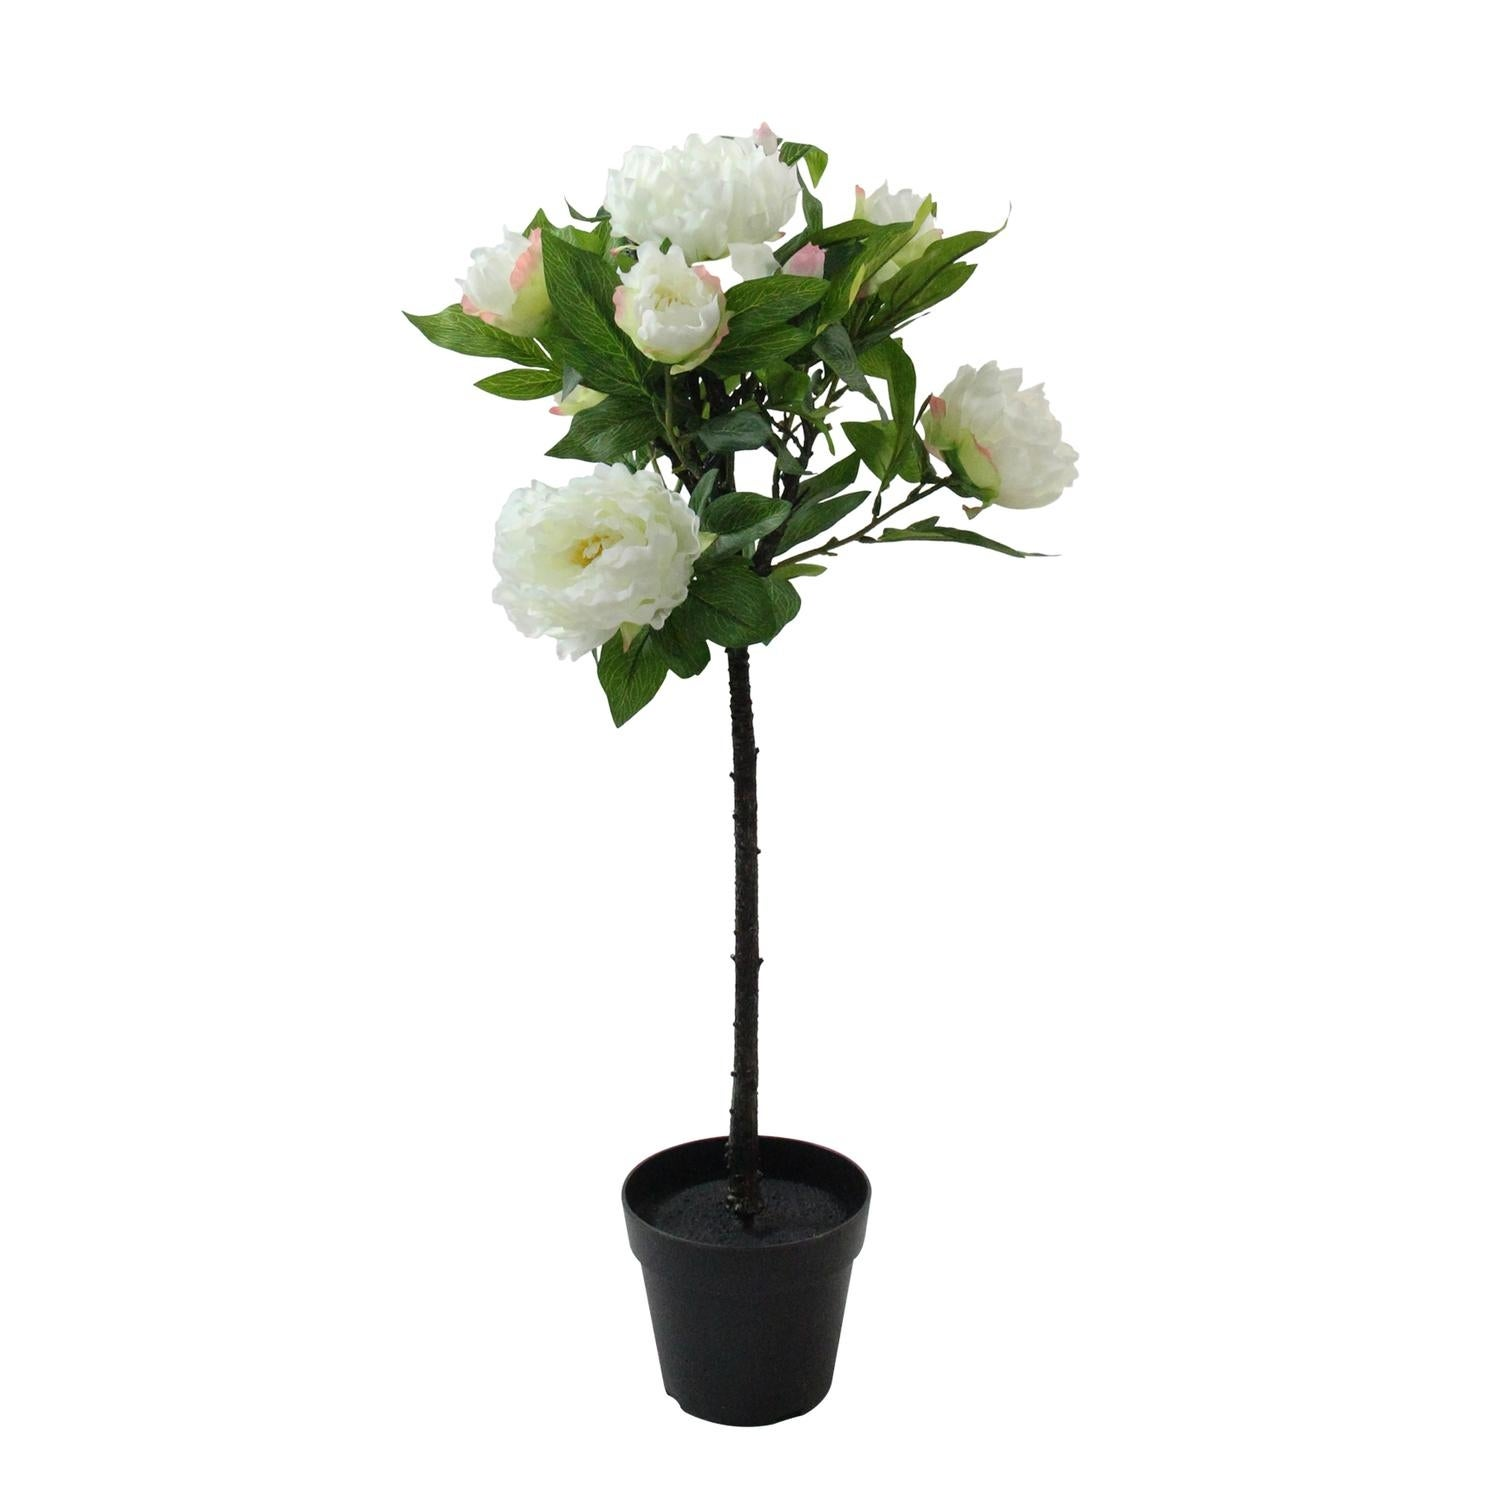 31 Ball Shaped Artificial Topiary Tree With Large White Flowers Potted Plant Decoration Overstock 18874644